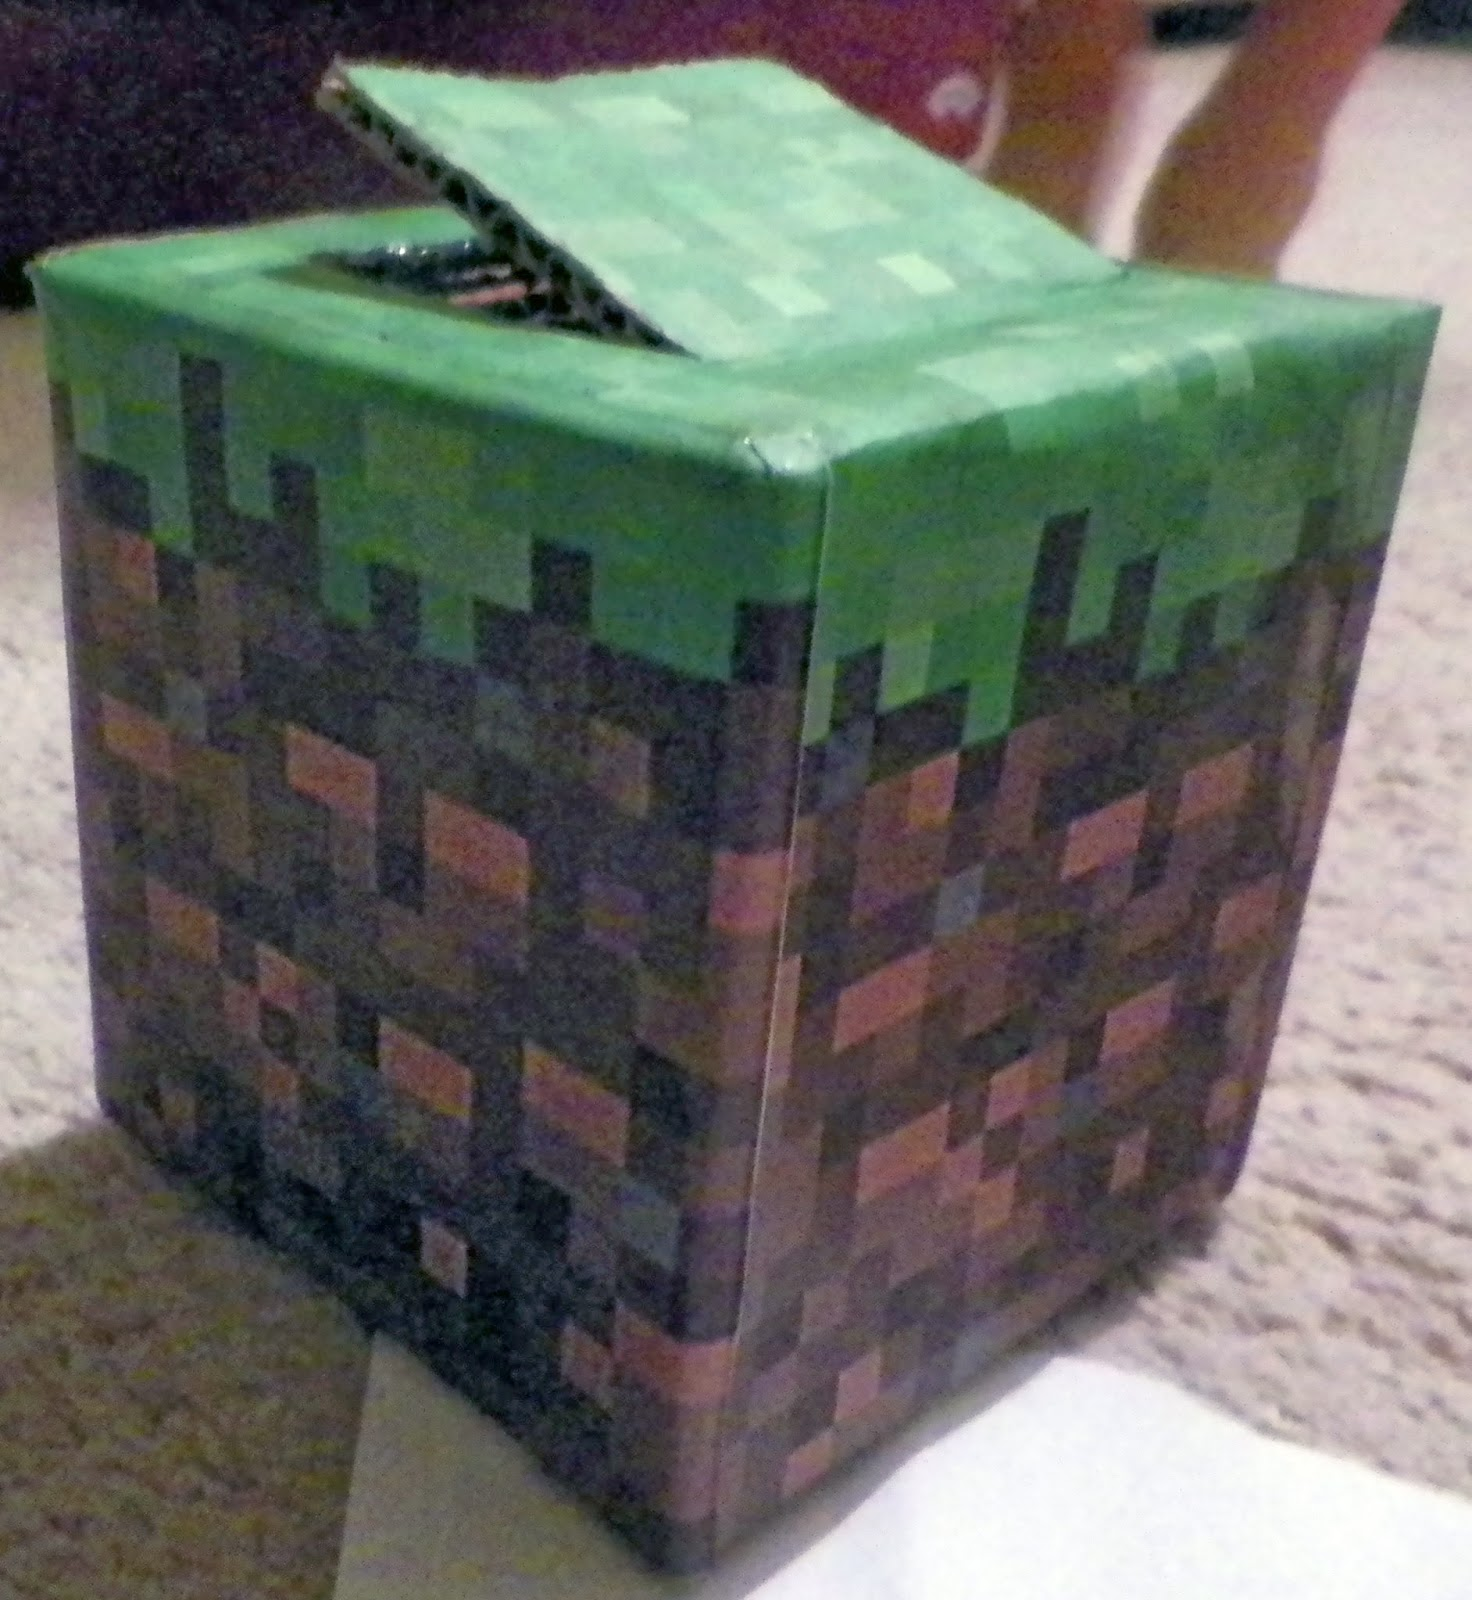 photograph regarding Minecraft Valentine Box Printable identified as Cies Innovative Crafts: Do-it-yourself Minecraft Valentine Playing cards Box